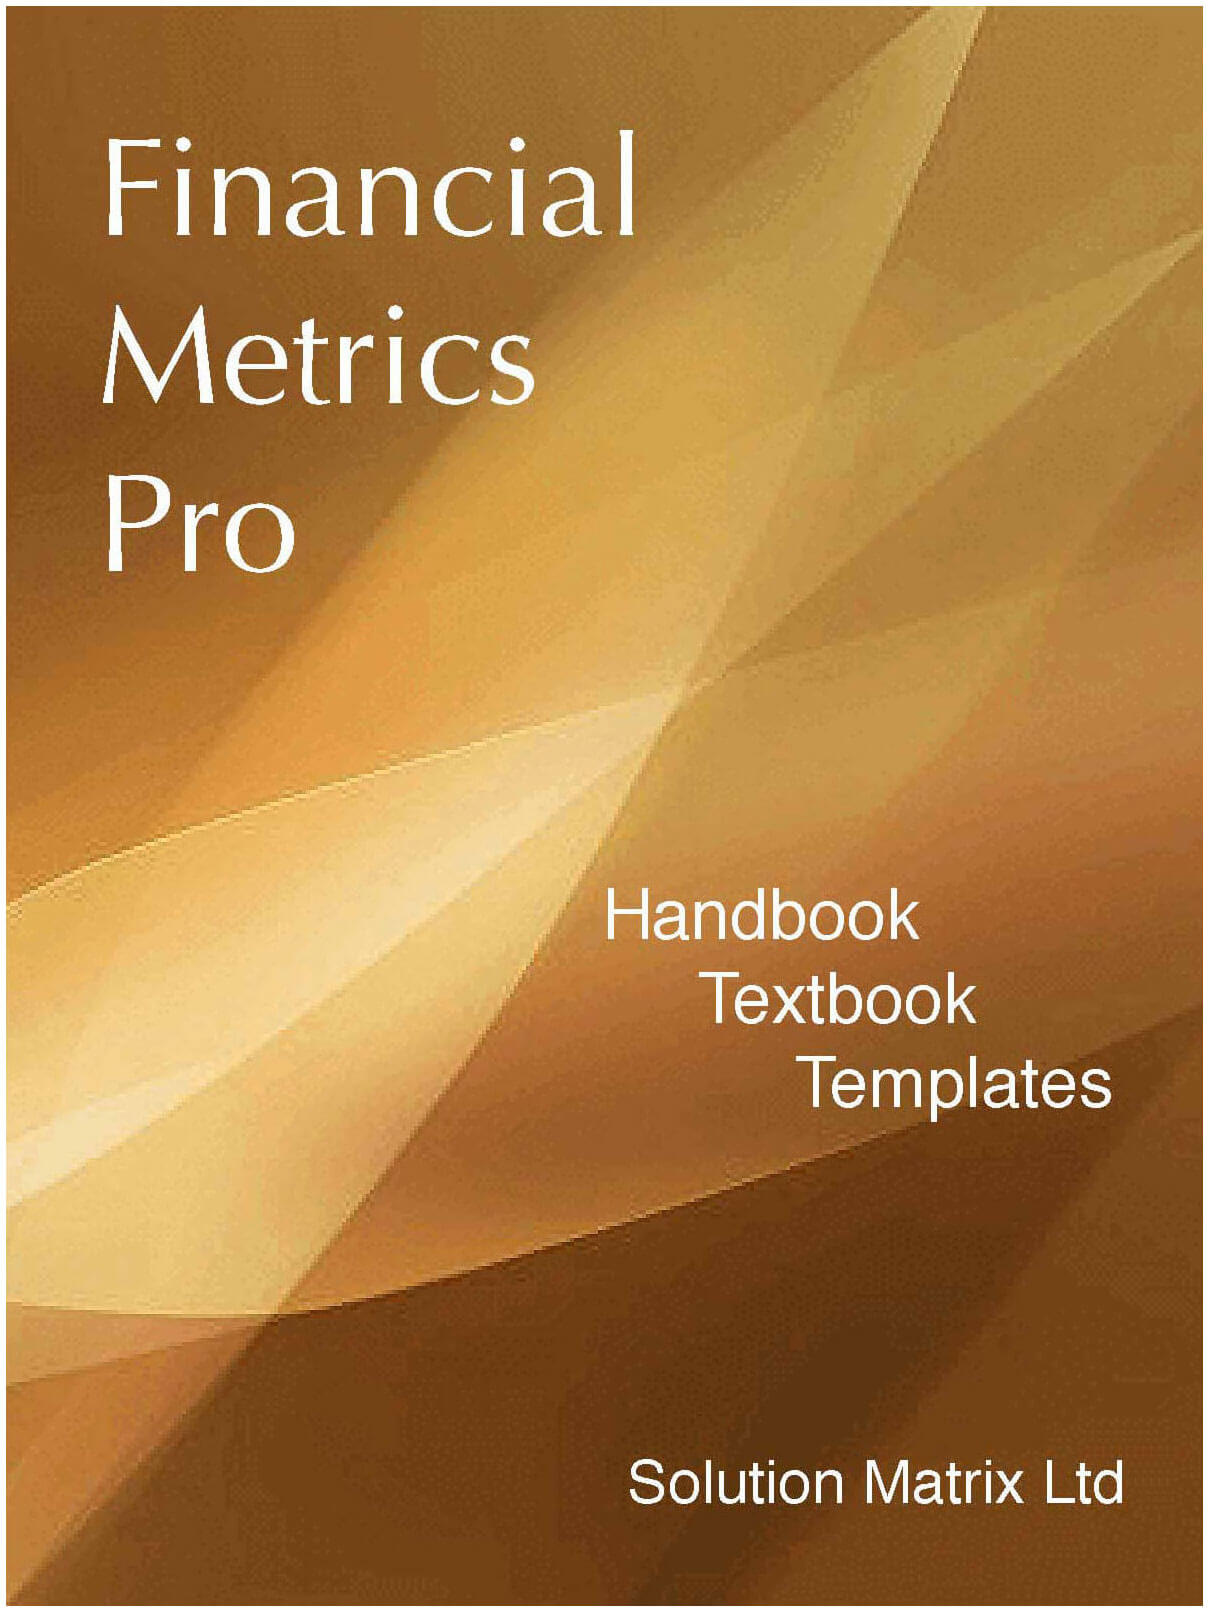 Buy the ebook Financial Metrics Pro